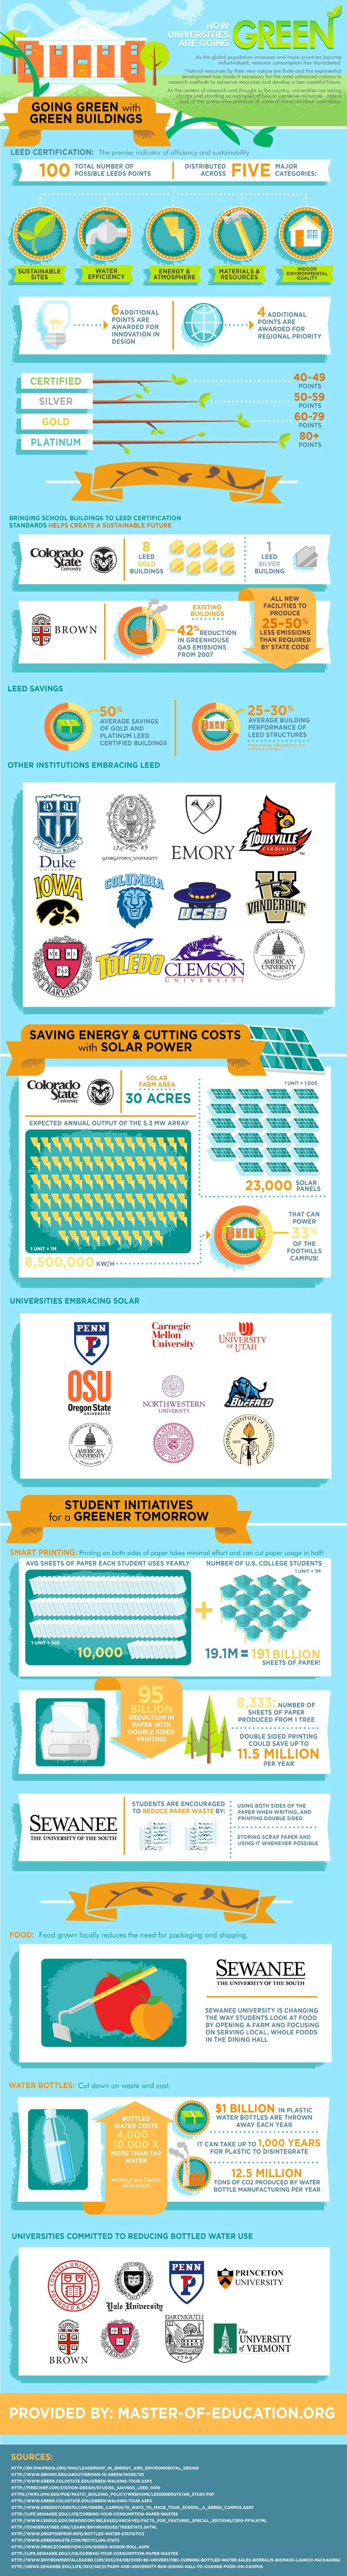 Green Colleges Infographic